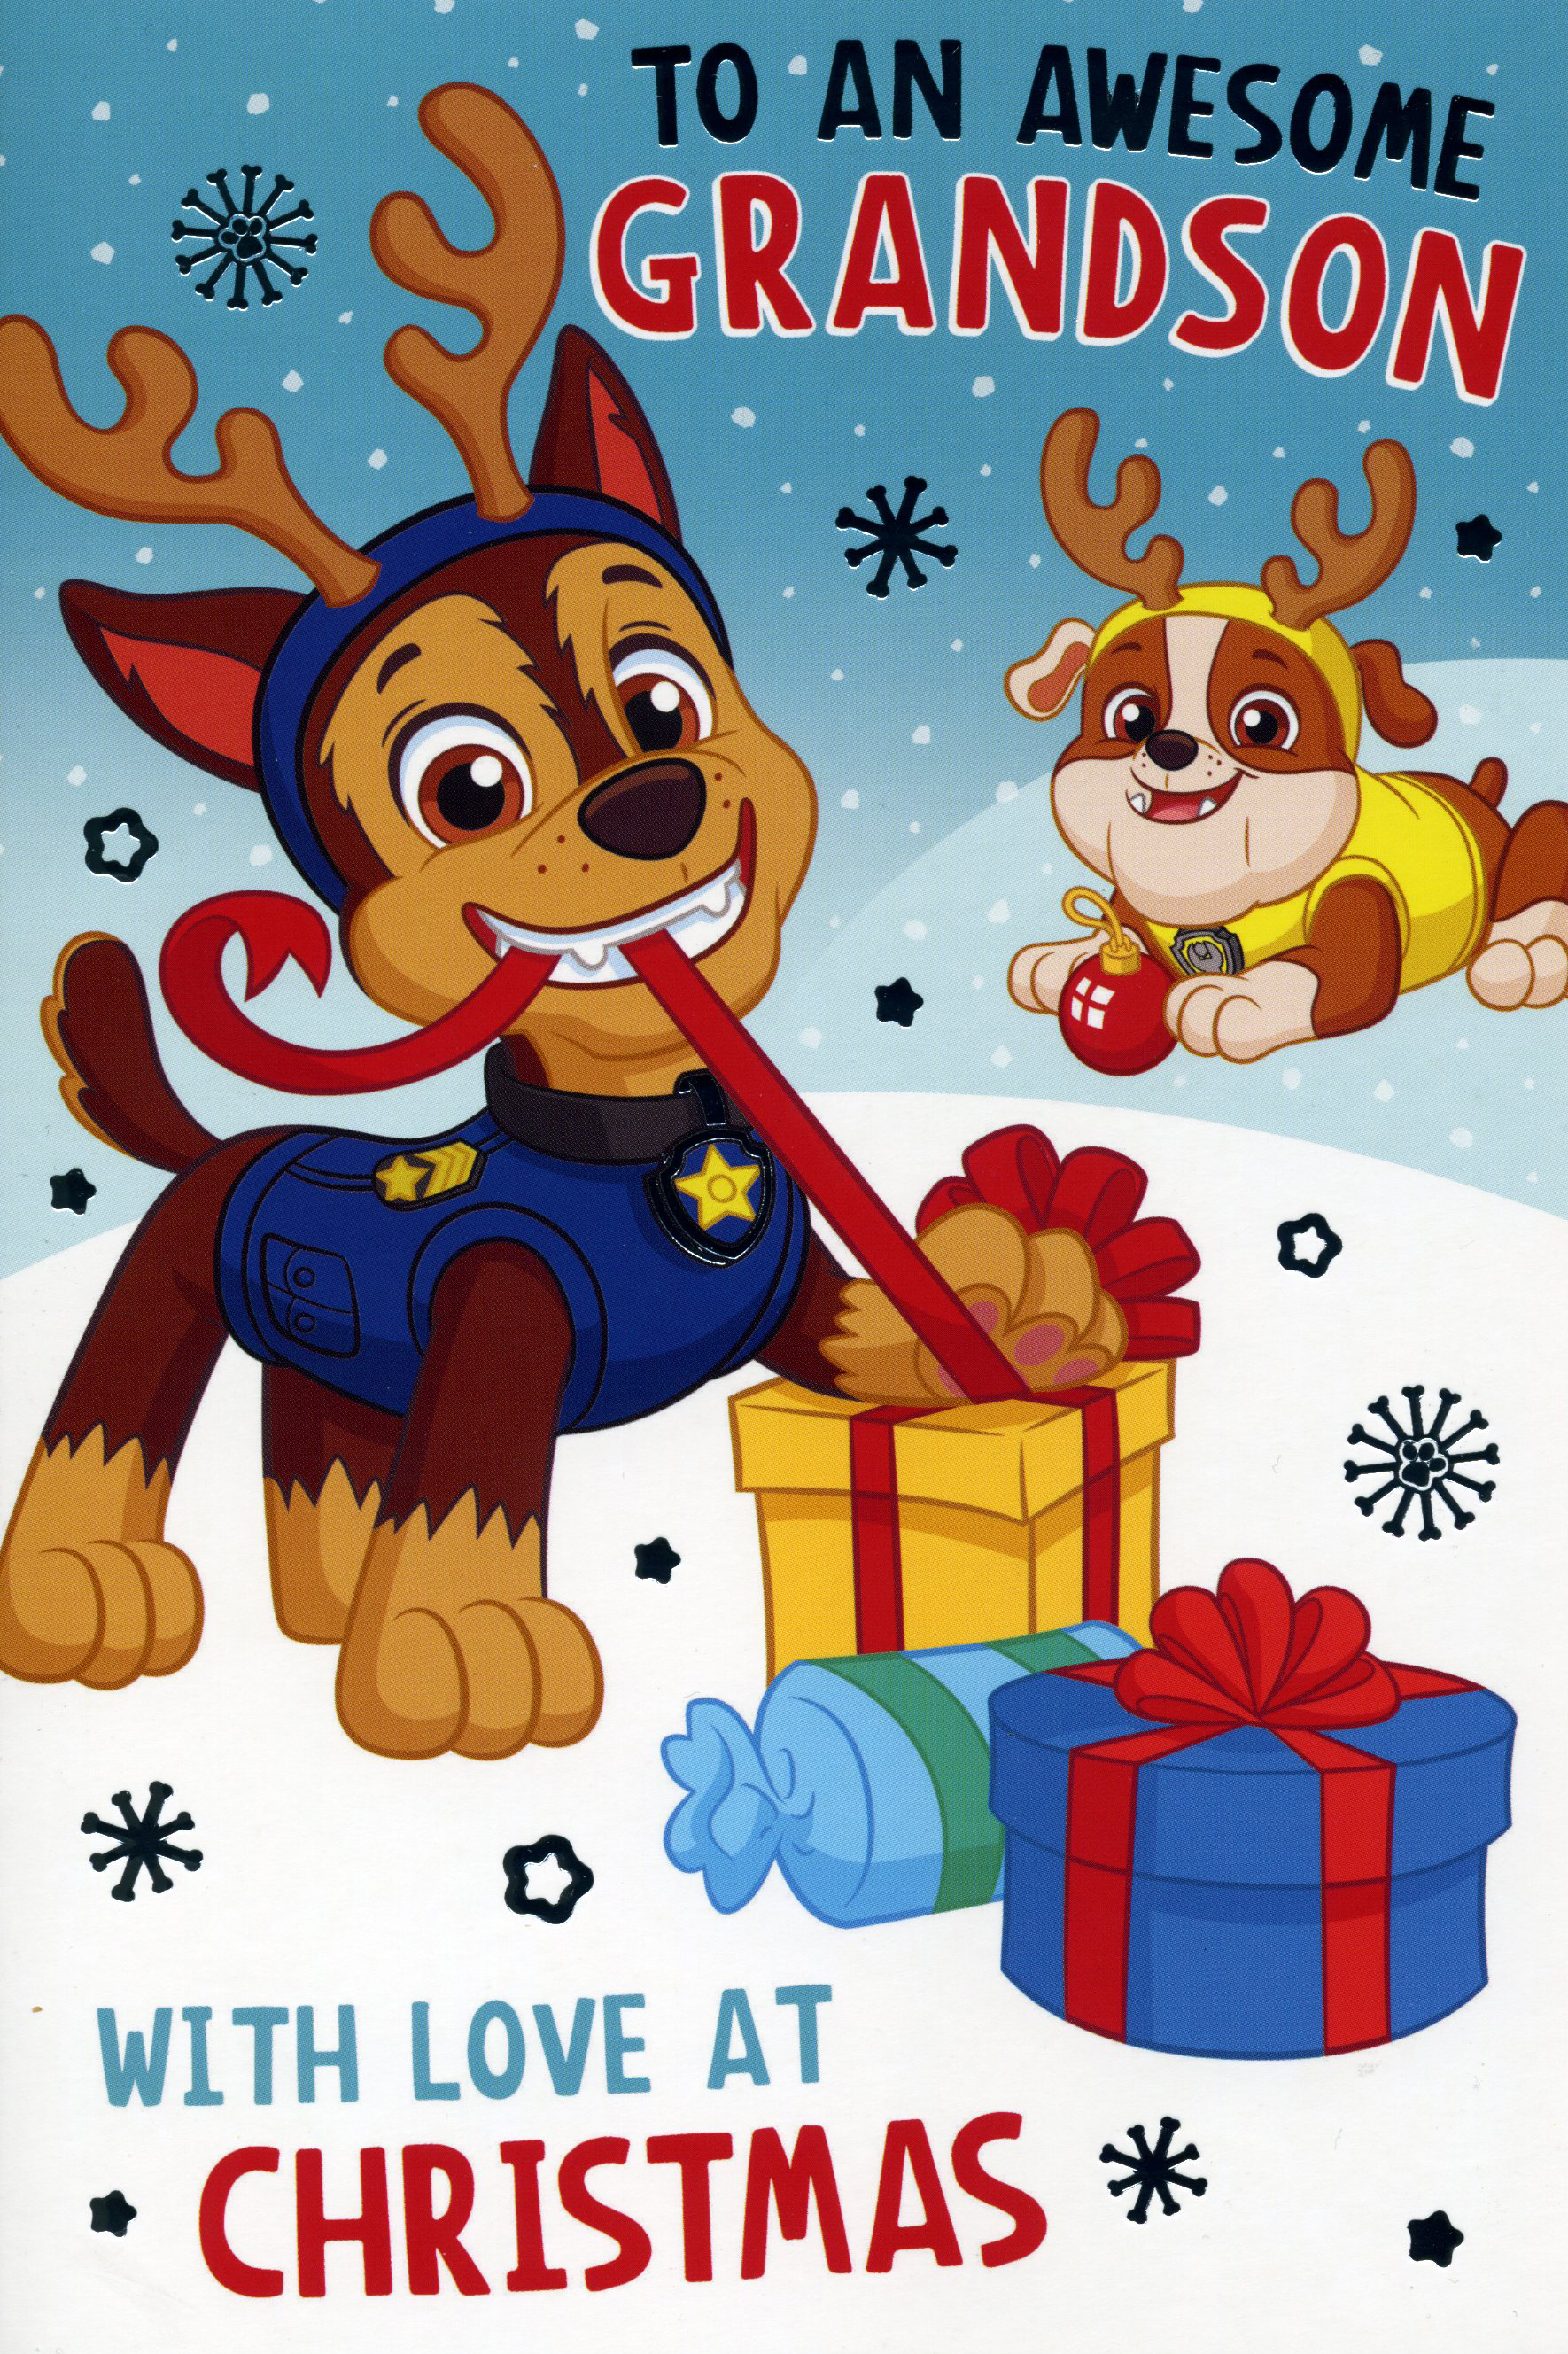 Paw Patrol Grandson Christmas Card